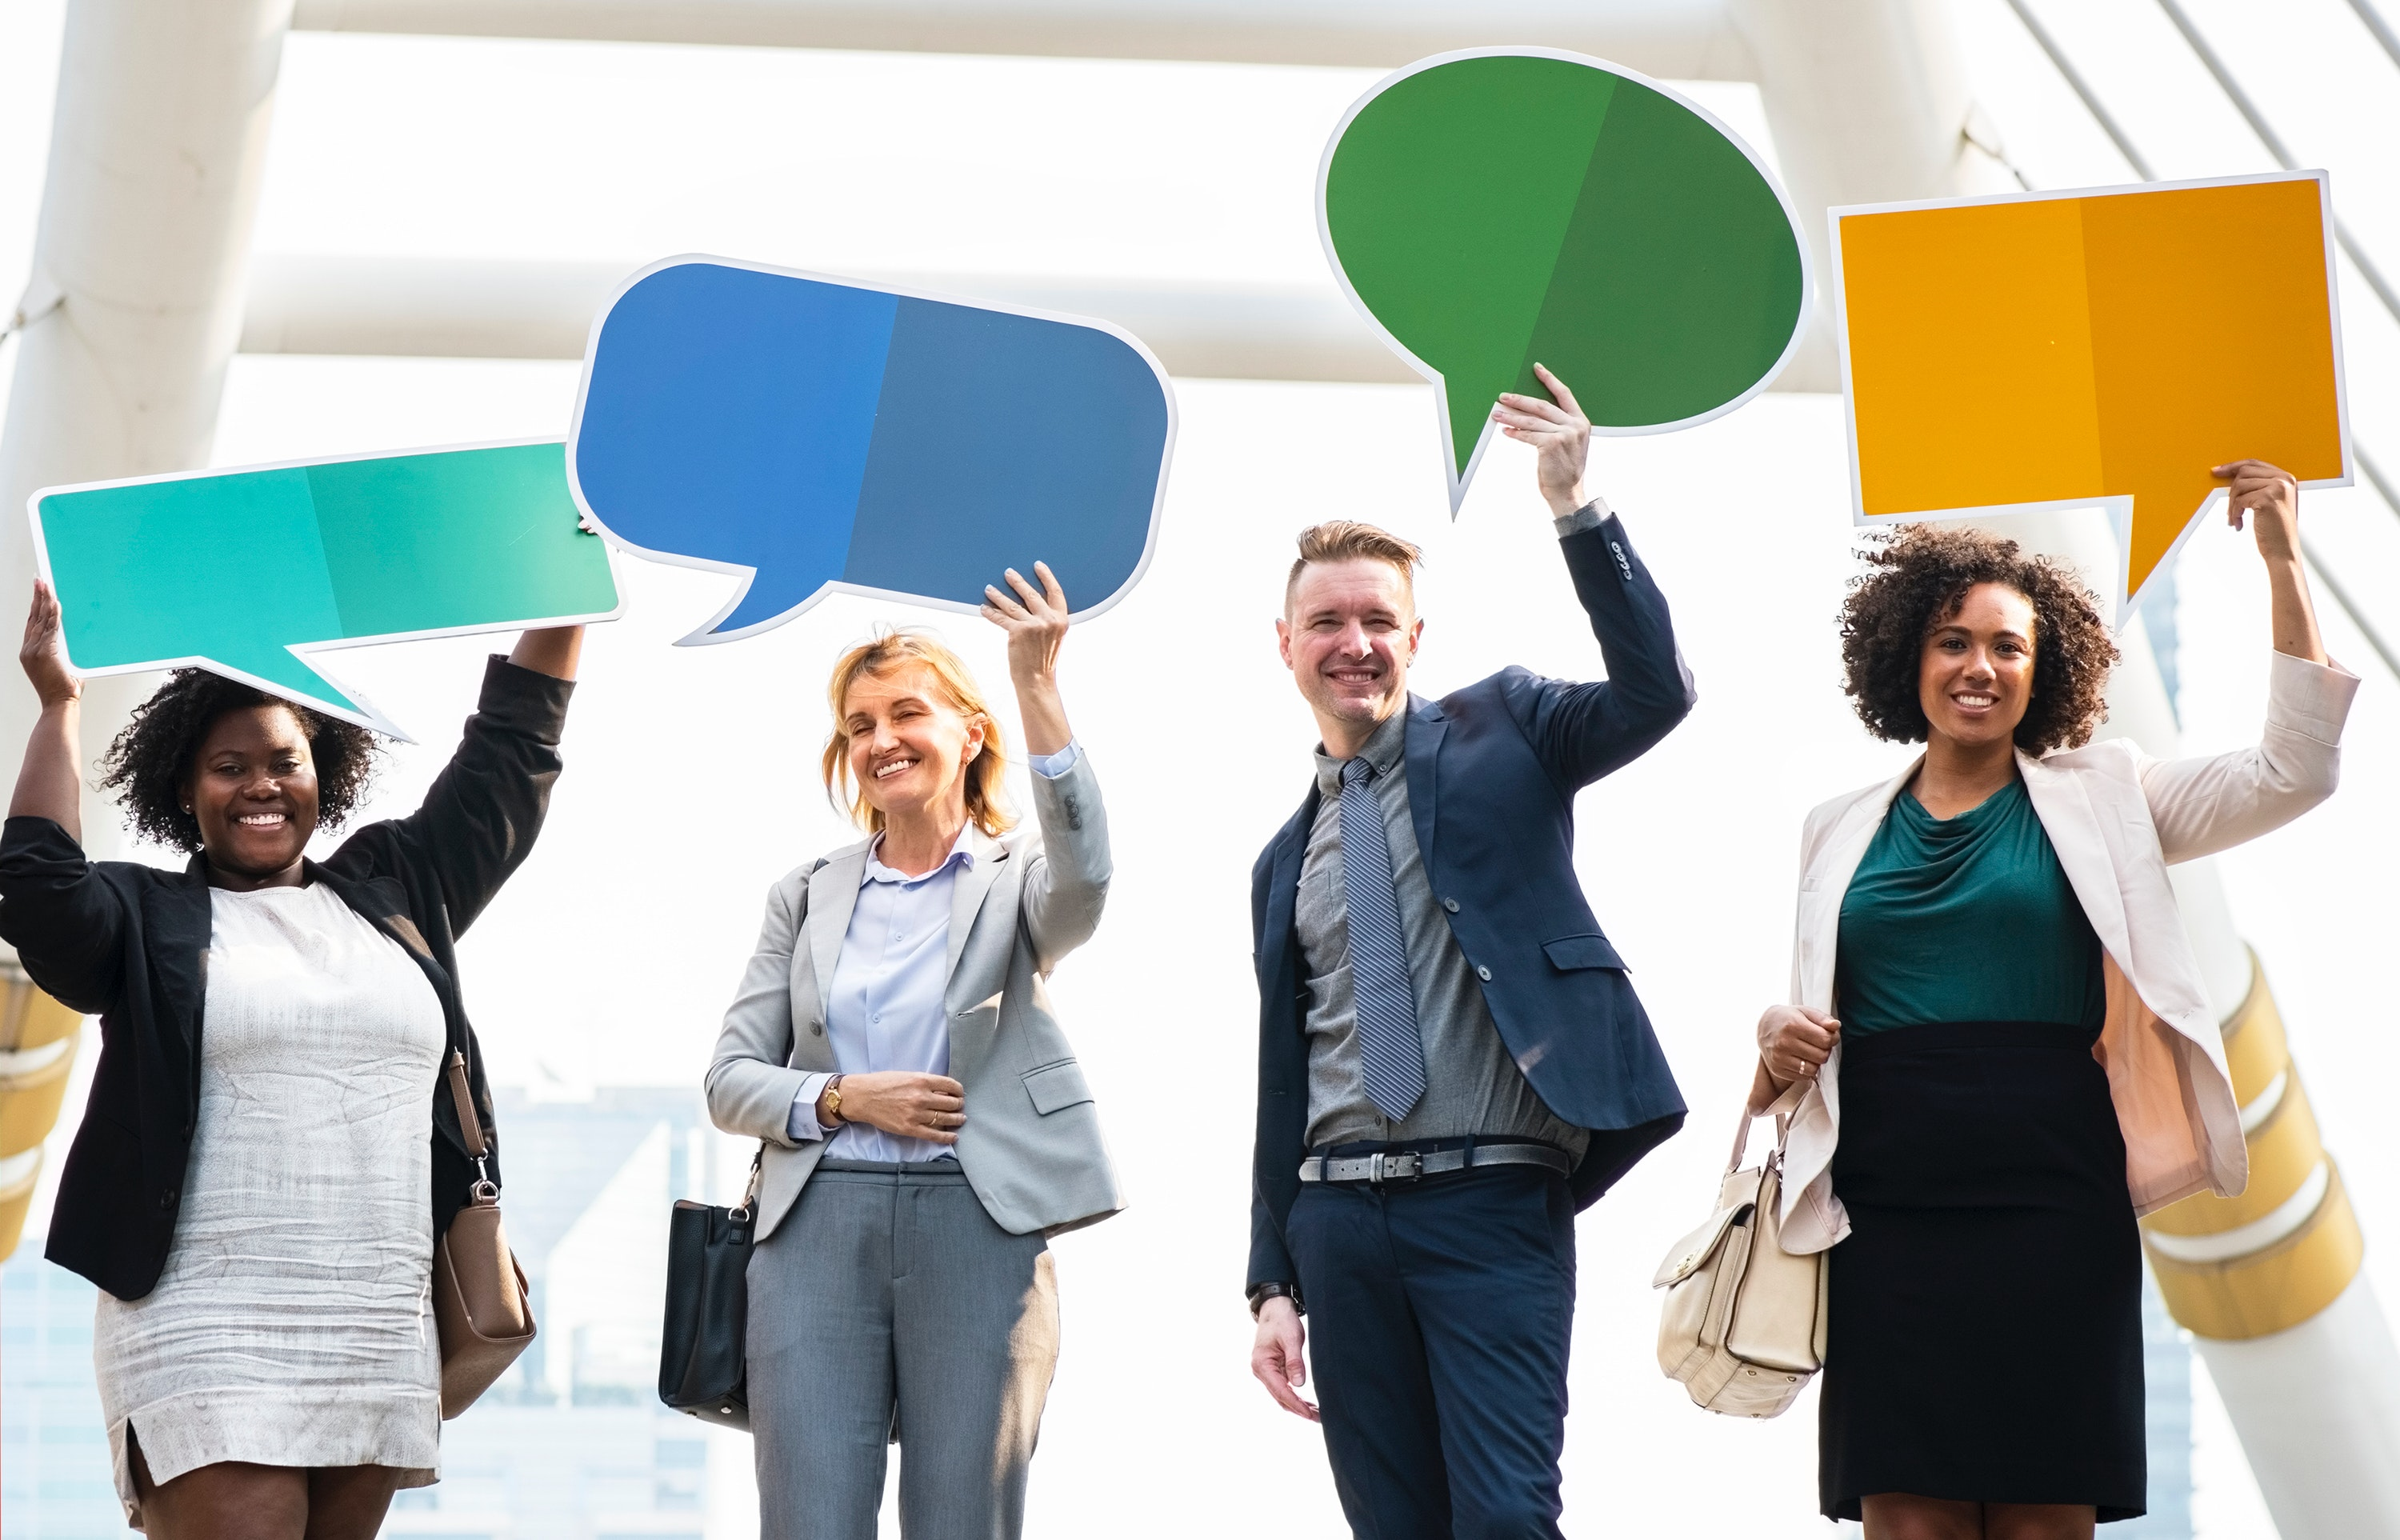 Why is communication so important in a small business?